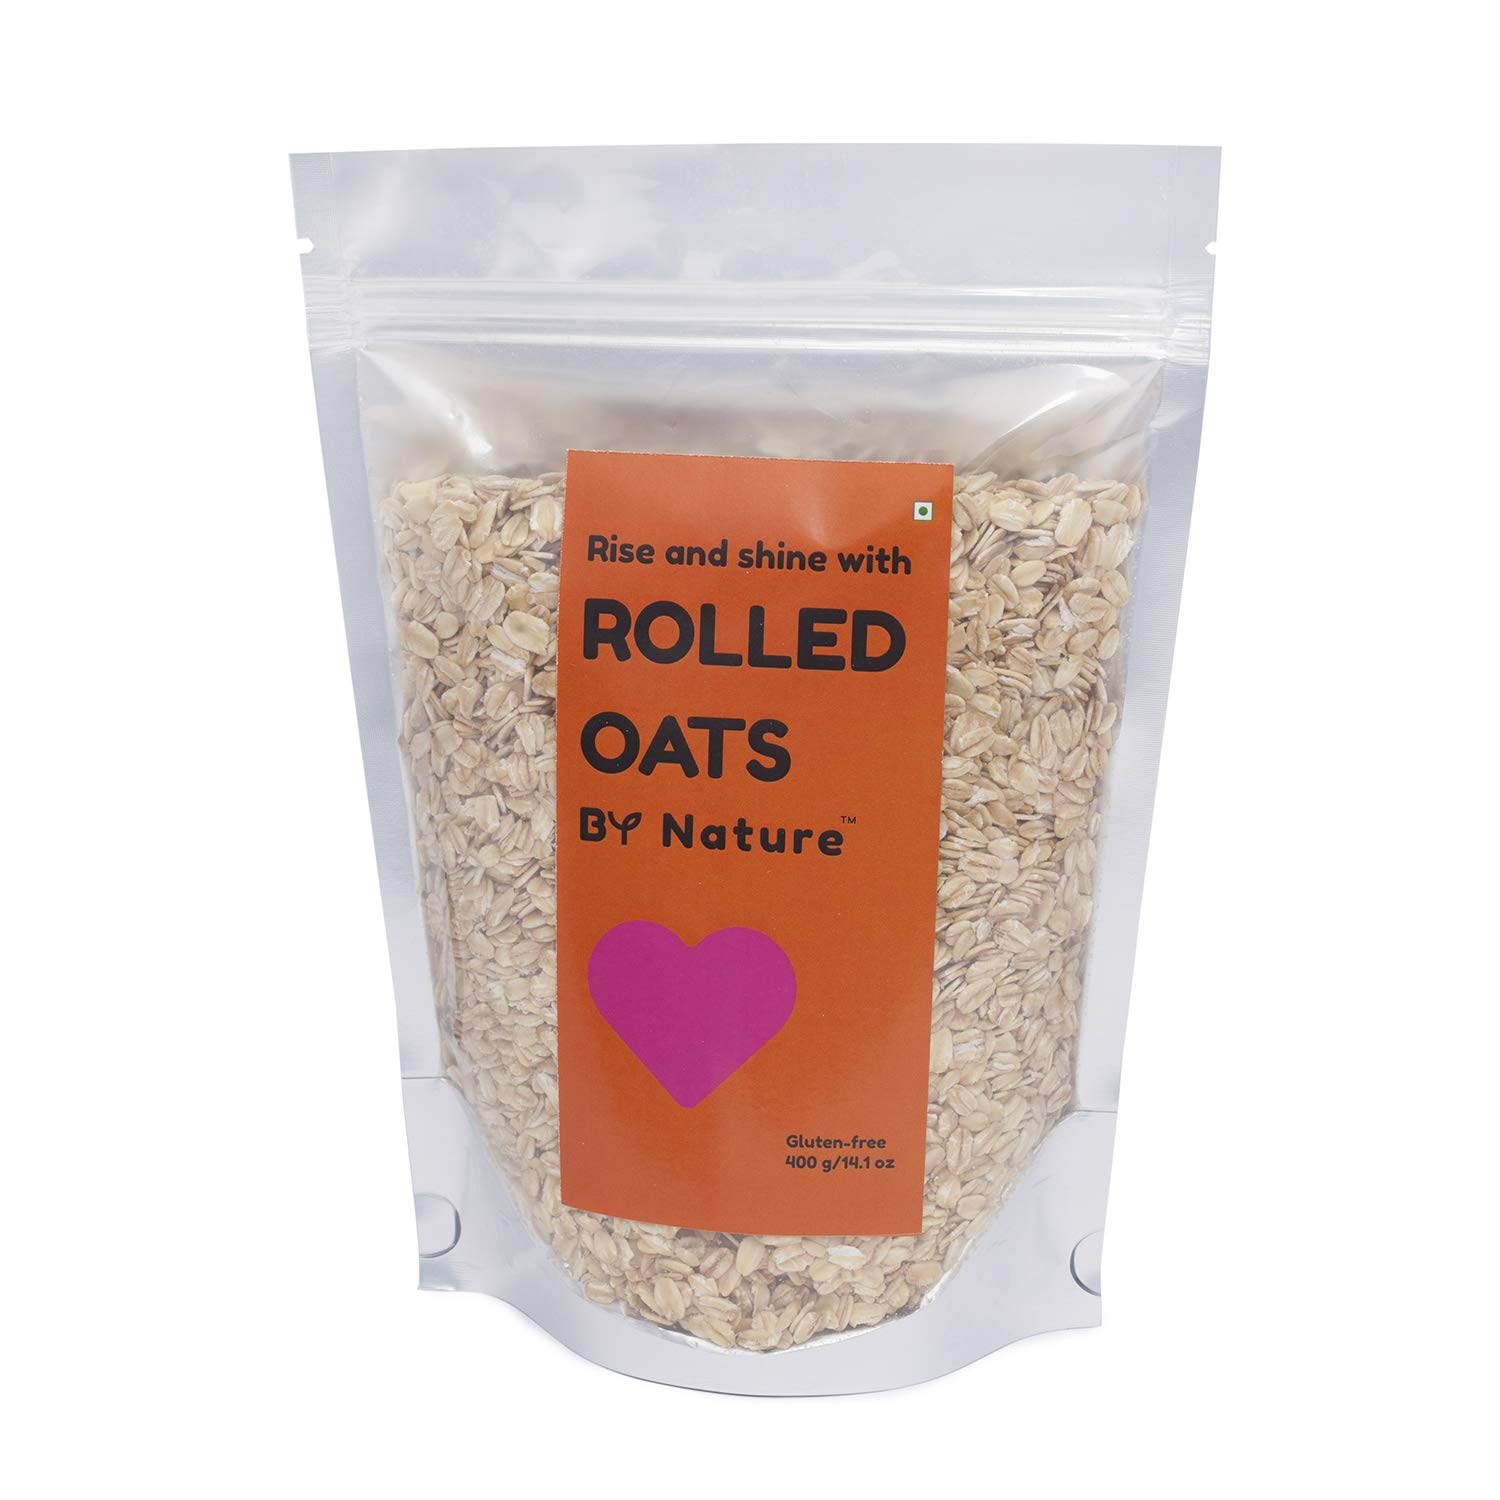 By Nature Rolled Oats, 400g